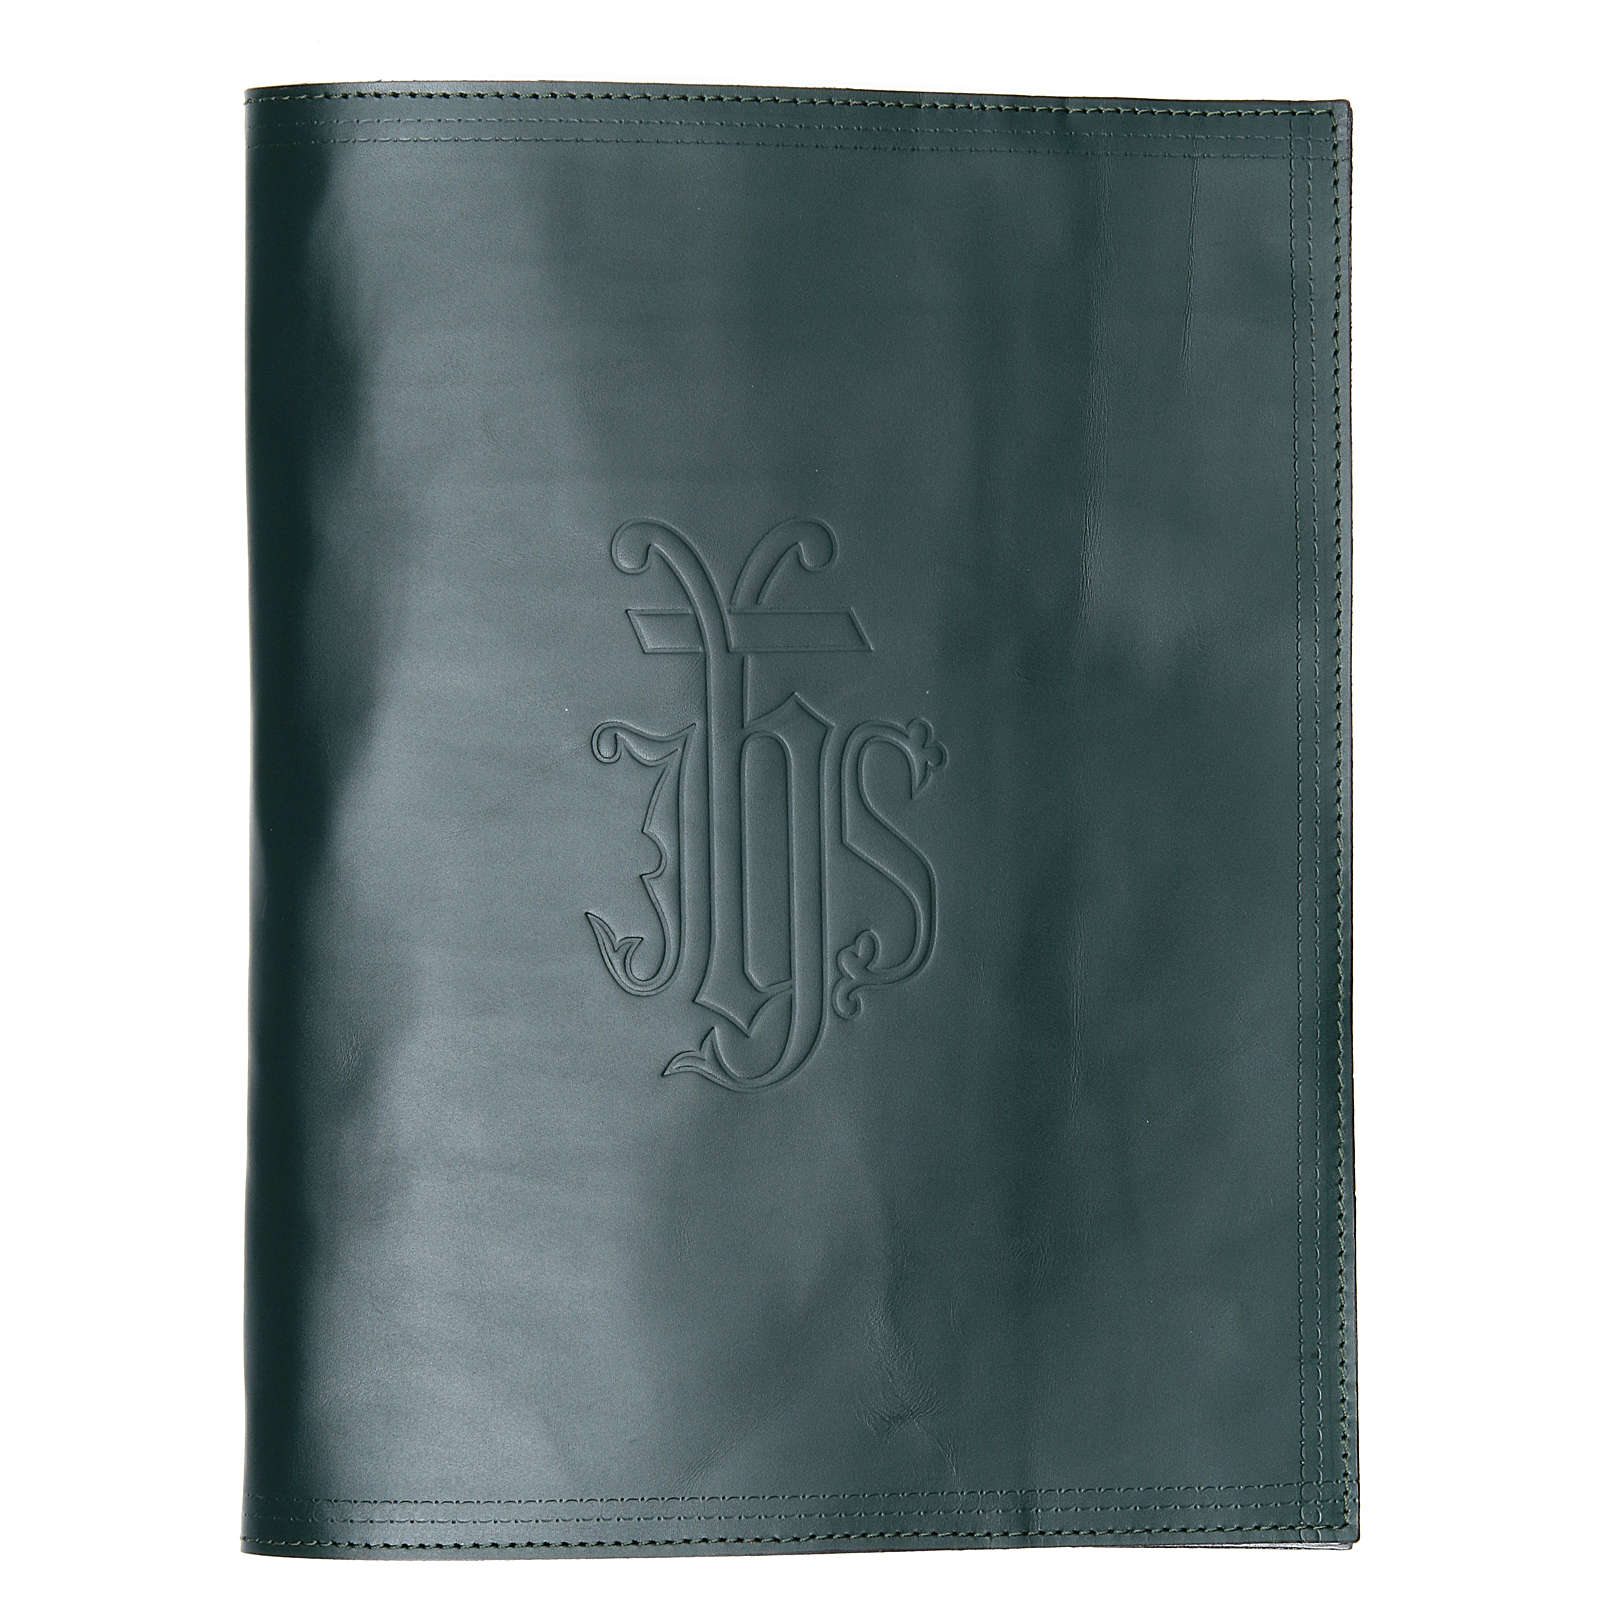 Lectionary cover in green leather with IHS writing 4